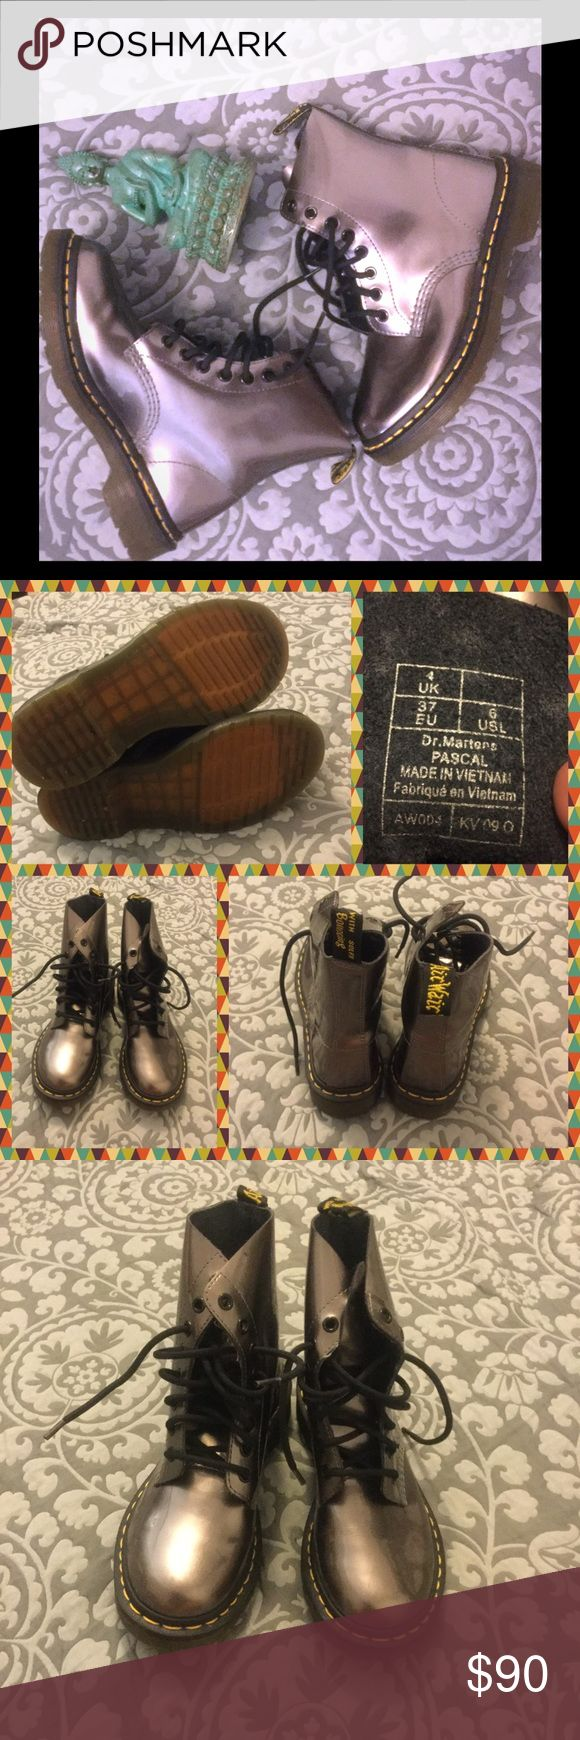 Pewter Dr Martens 💀☠️💀☠️ Excellent used Dr Martens pascal style boots ☠️💀 Super comfy and stylish ☠️💀 These boots are so cute to amp up an outfit and can be used to rain and snow boots ☠️💀 These are the pewter color and are super versatile ☠️💀 The only reason I have to get rid of them is they run a little on the narrow side and the tops of my feet rub up against them too much ☠️💀 No markings, wear or tear ☠️💀 Ellie Goulding style 💙💙💙 Perfect item to bundle for 30%off!! Dr. Martens…